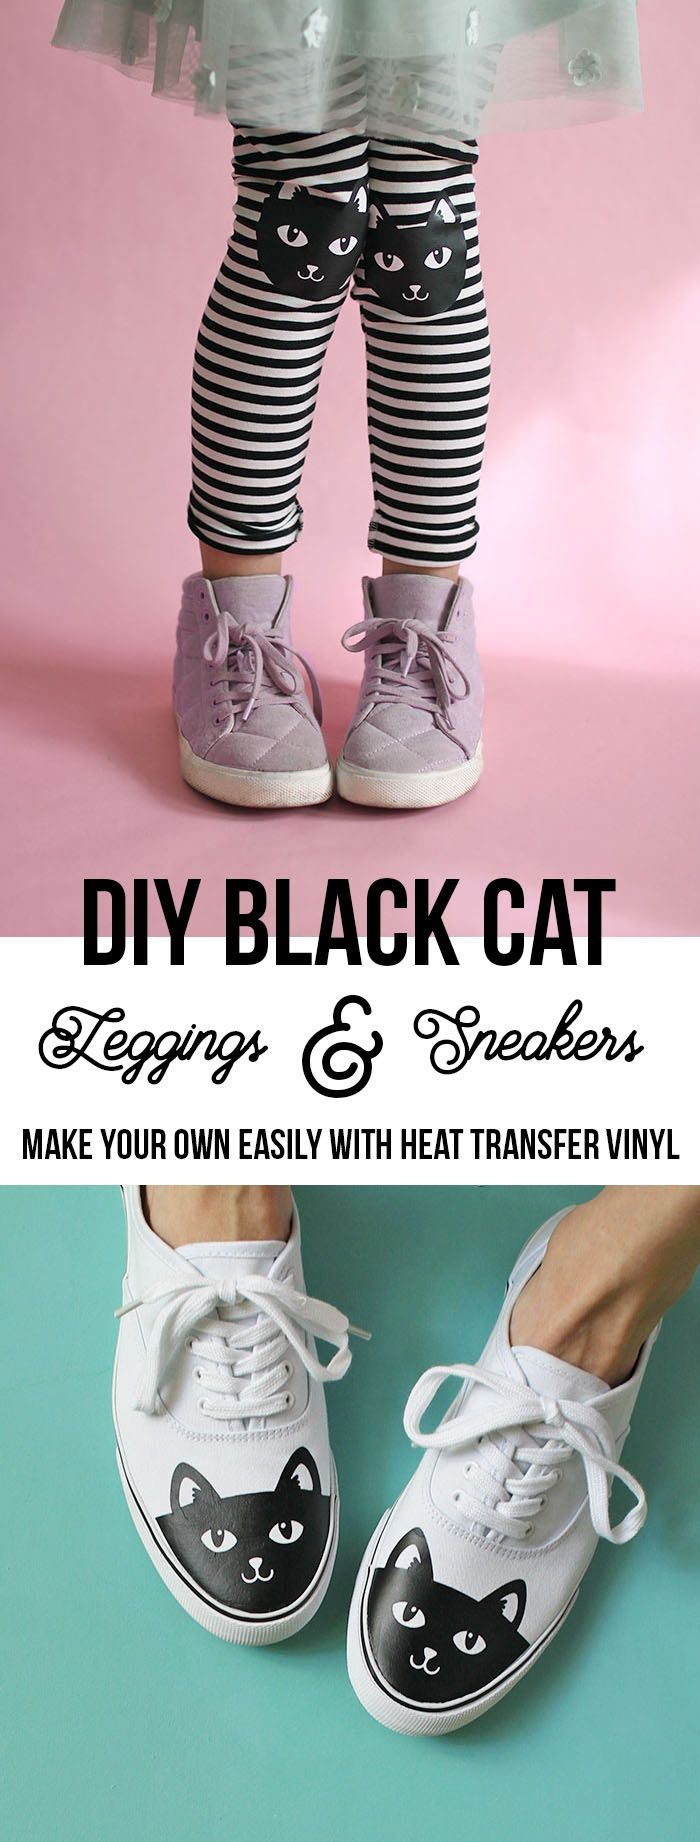 best 25+ make your own shoes ideas on pinterest | diy leather